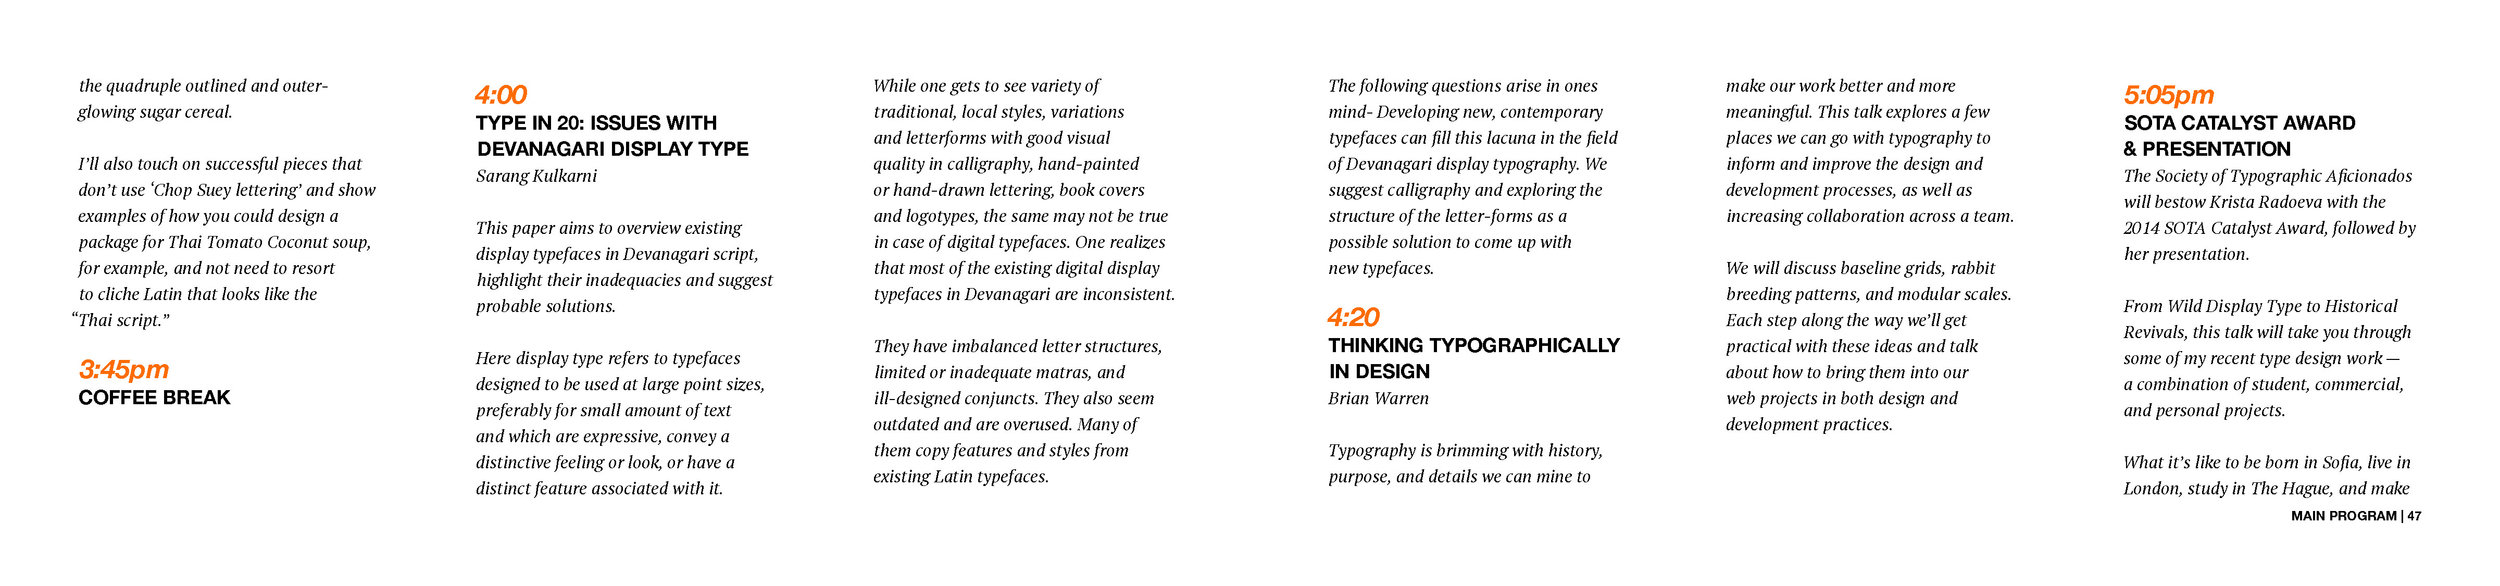 typecon_book_NEW_Page_24.jpg